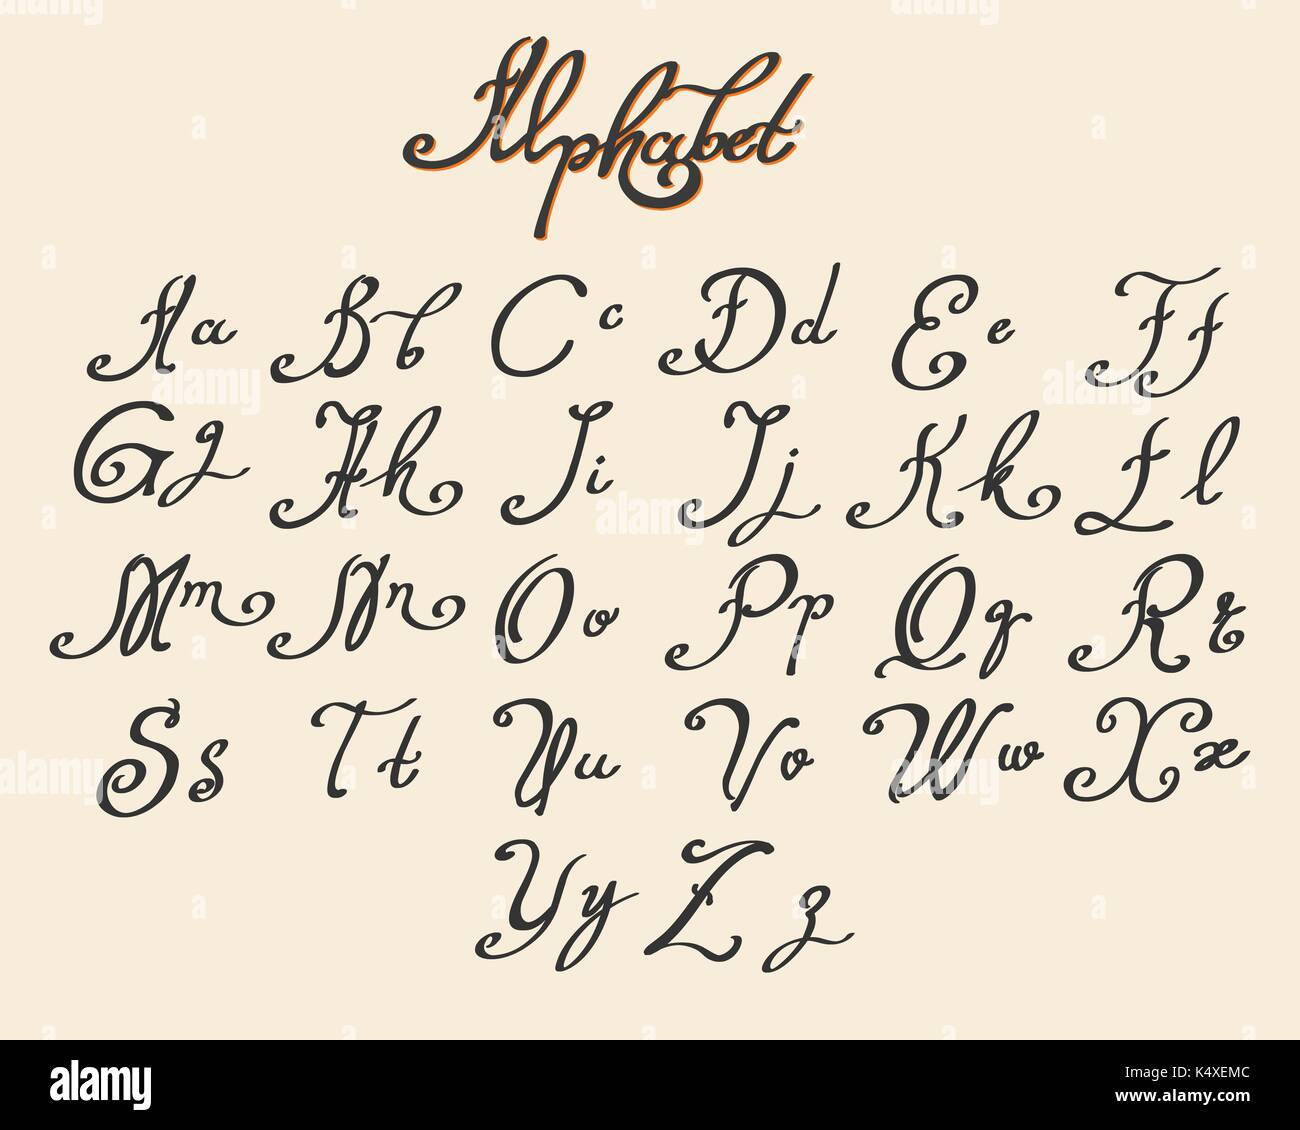 Handwritten Calligraphy Font Drawn In Ink Style Vector Illustration